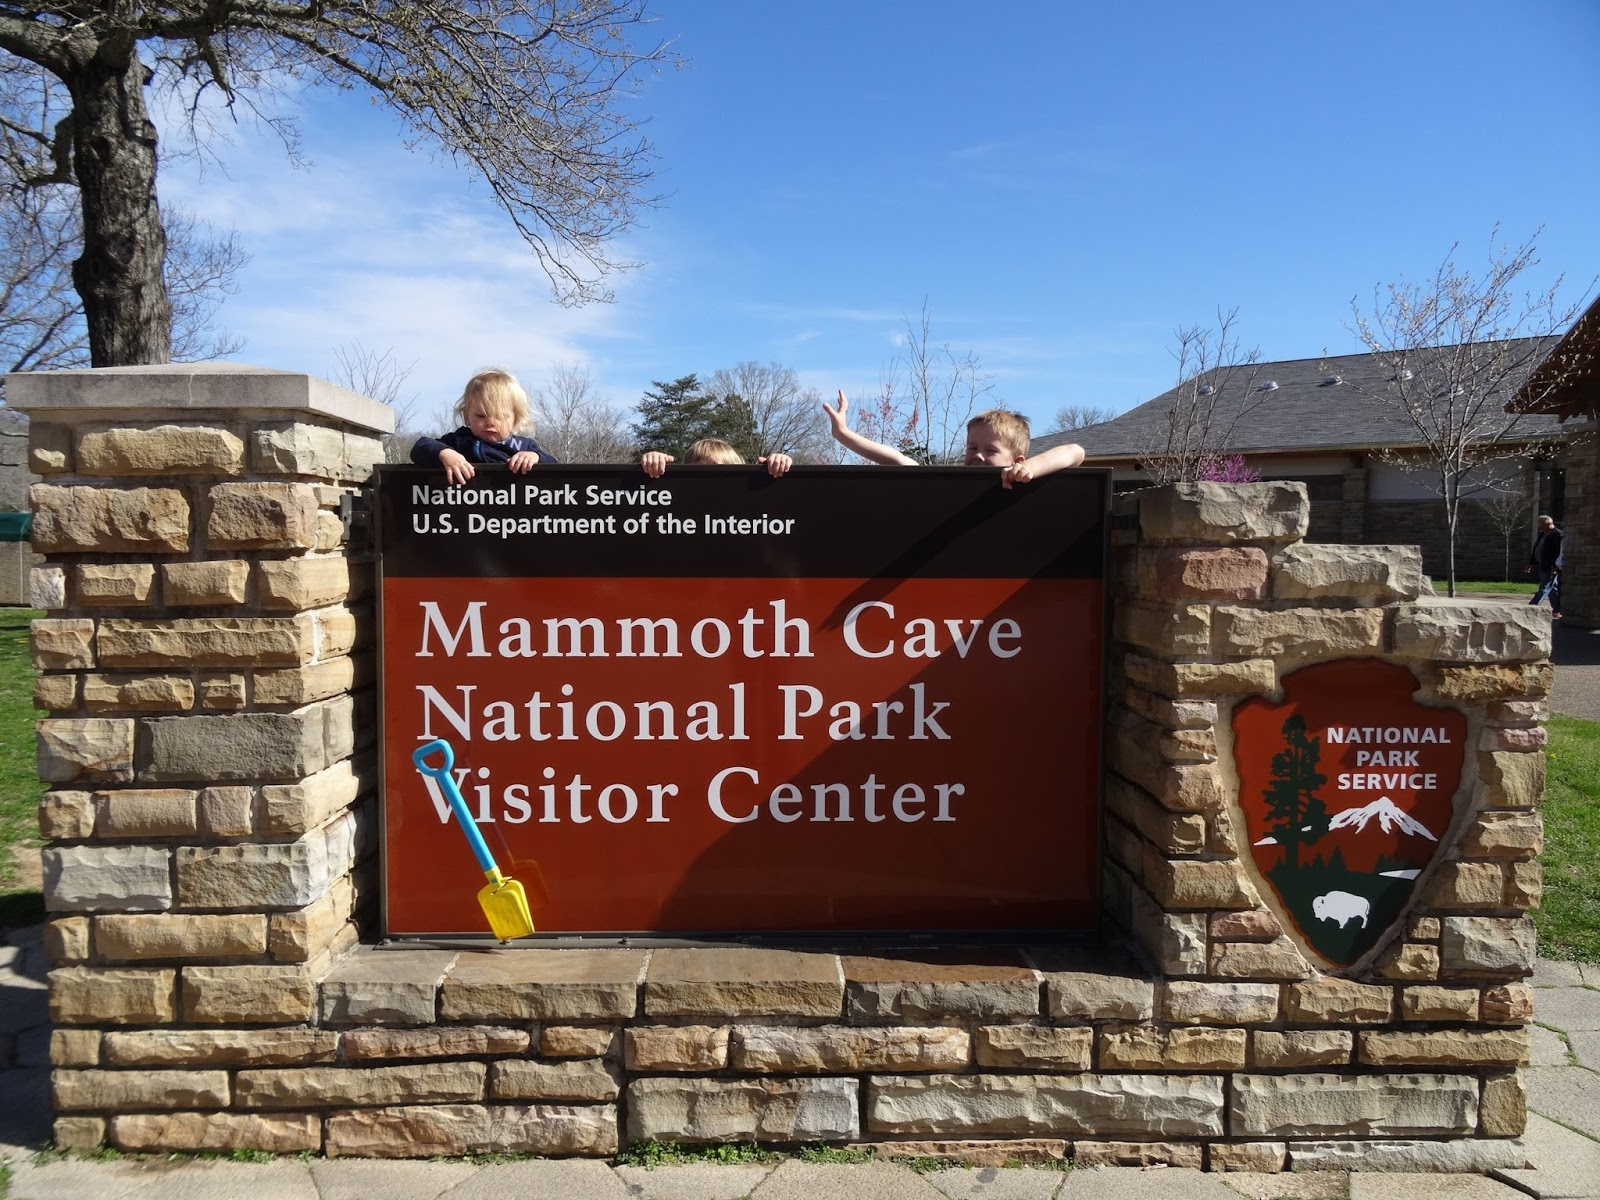 Femme au foyer Mammoth Cave Discovery Tour